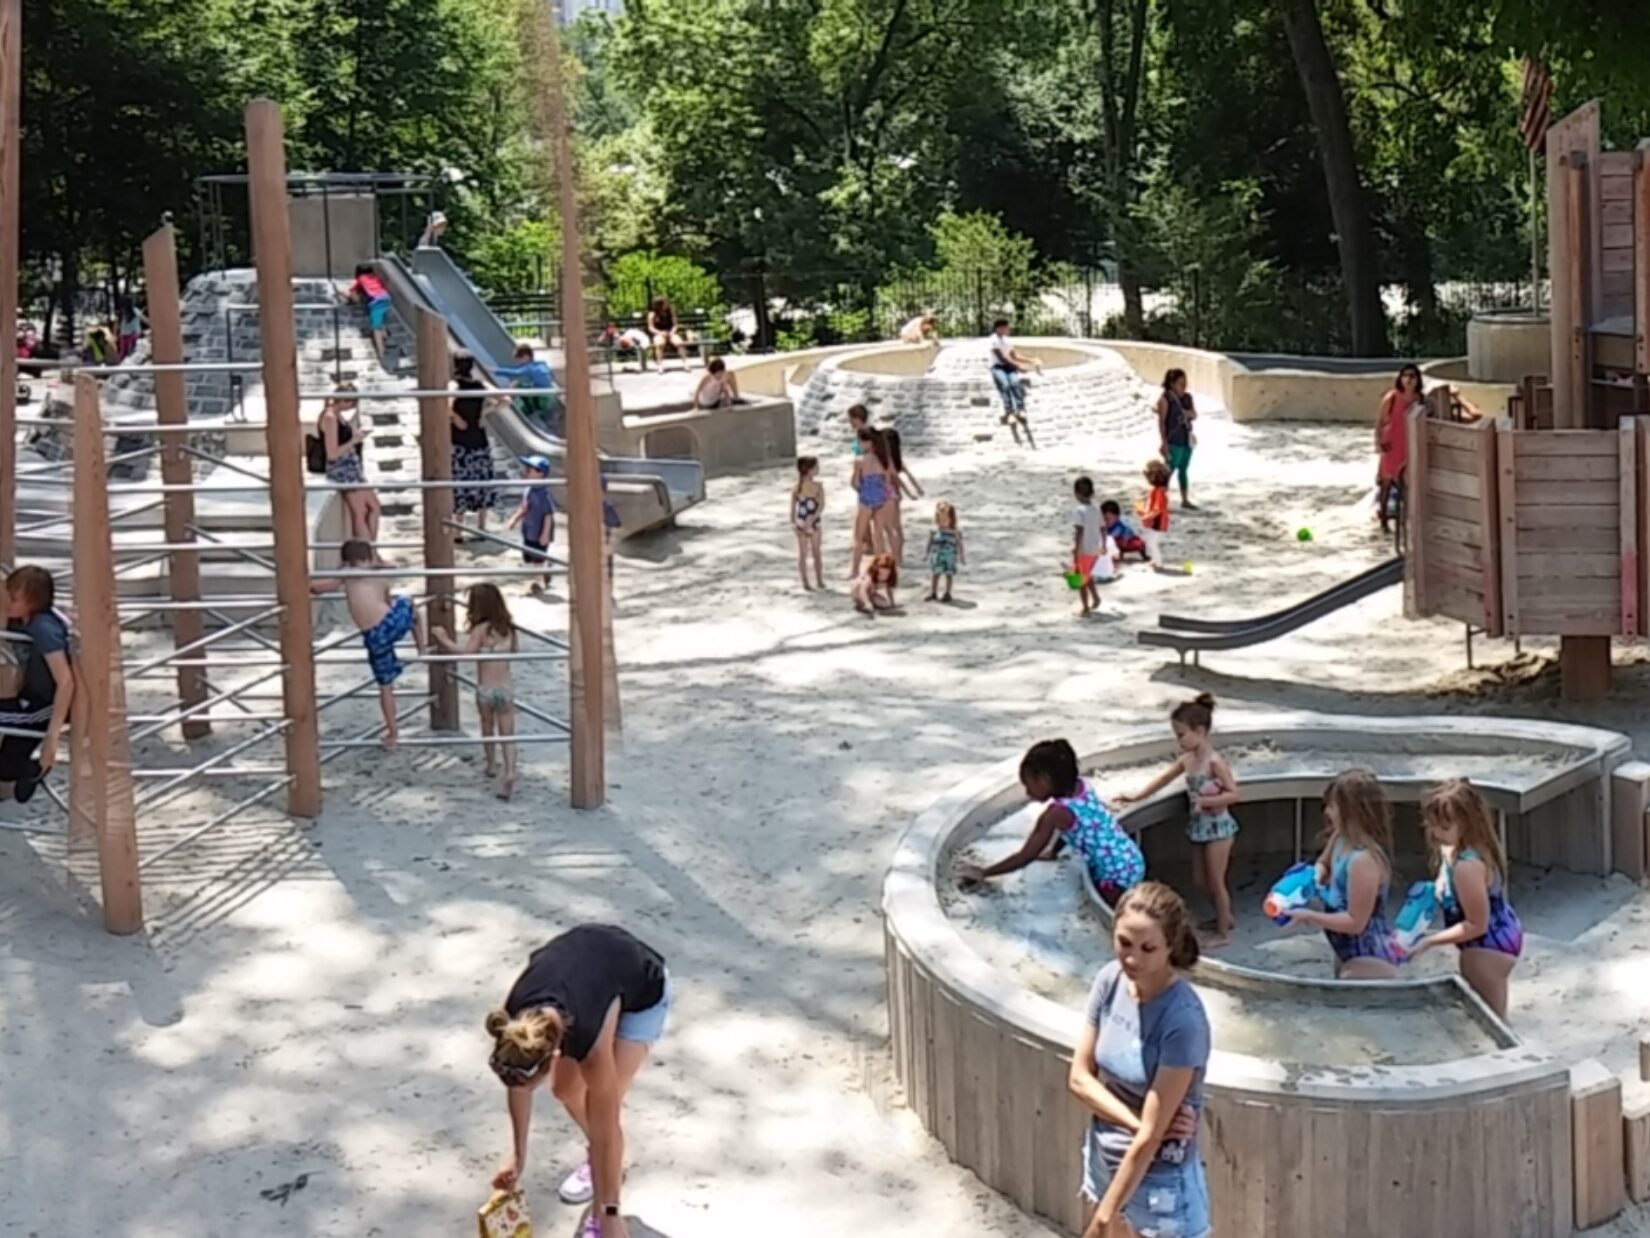 Children enjoying the different sections of the playground.